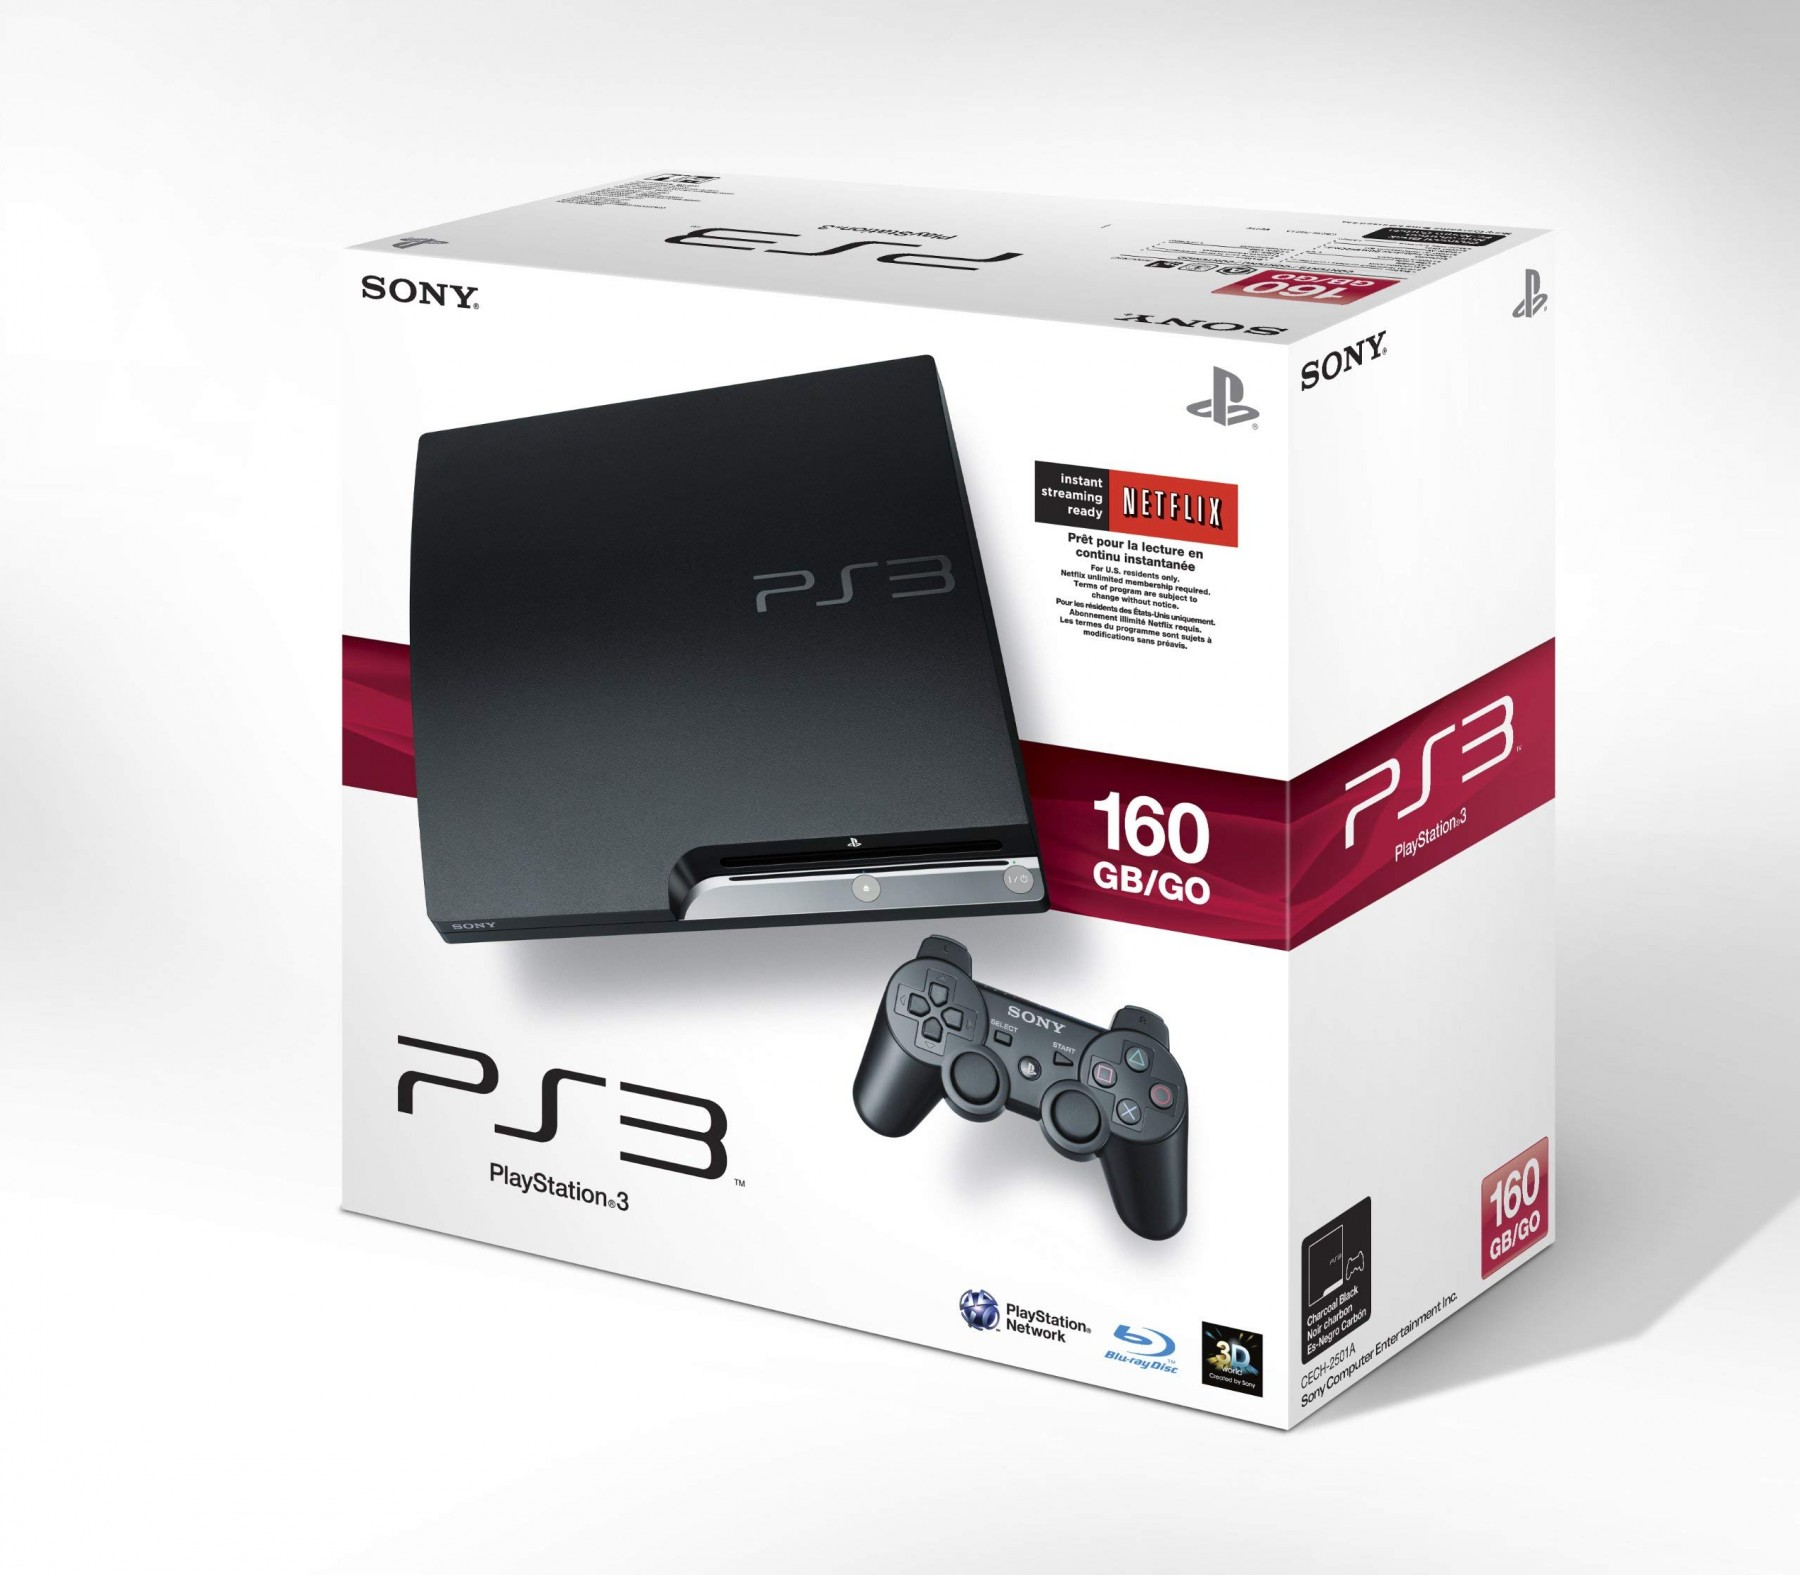 Sony PlayStation 3 Slim 160GB | PS3 Slim 160GB б/у